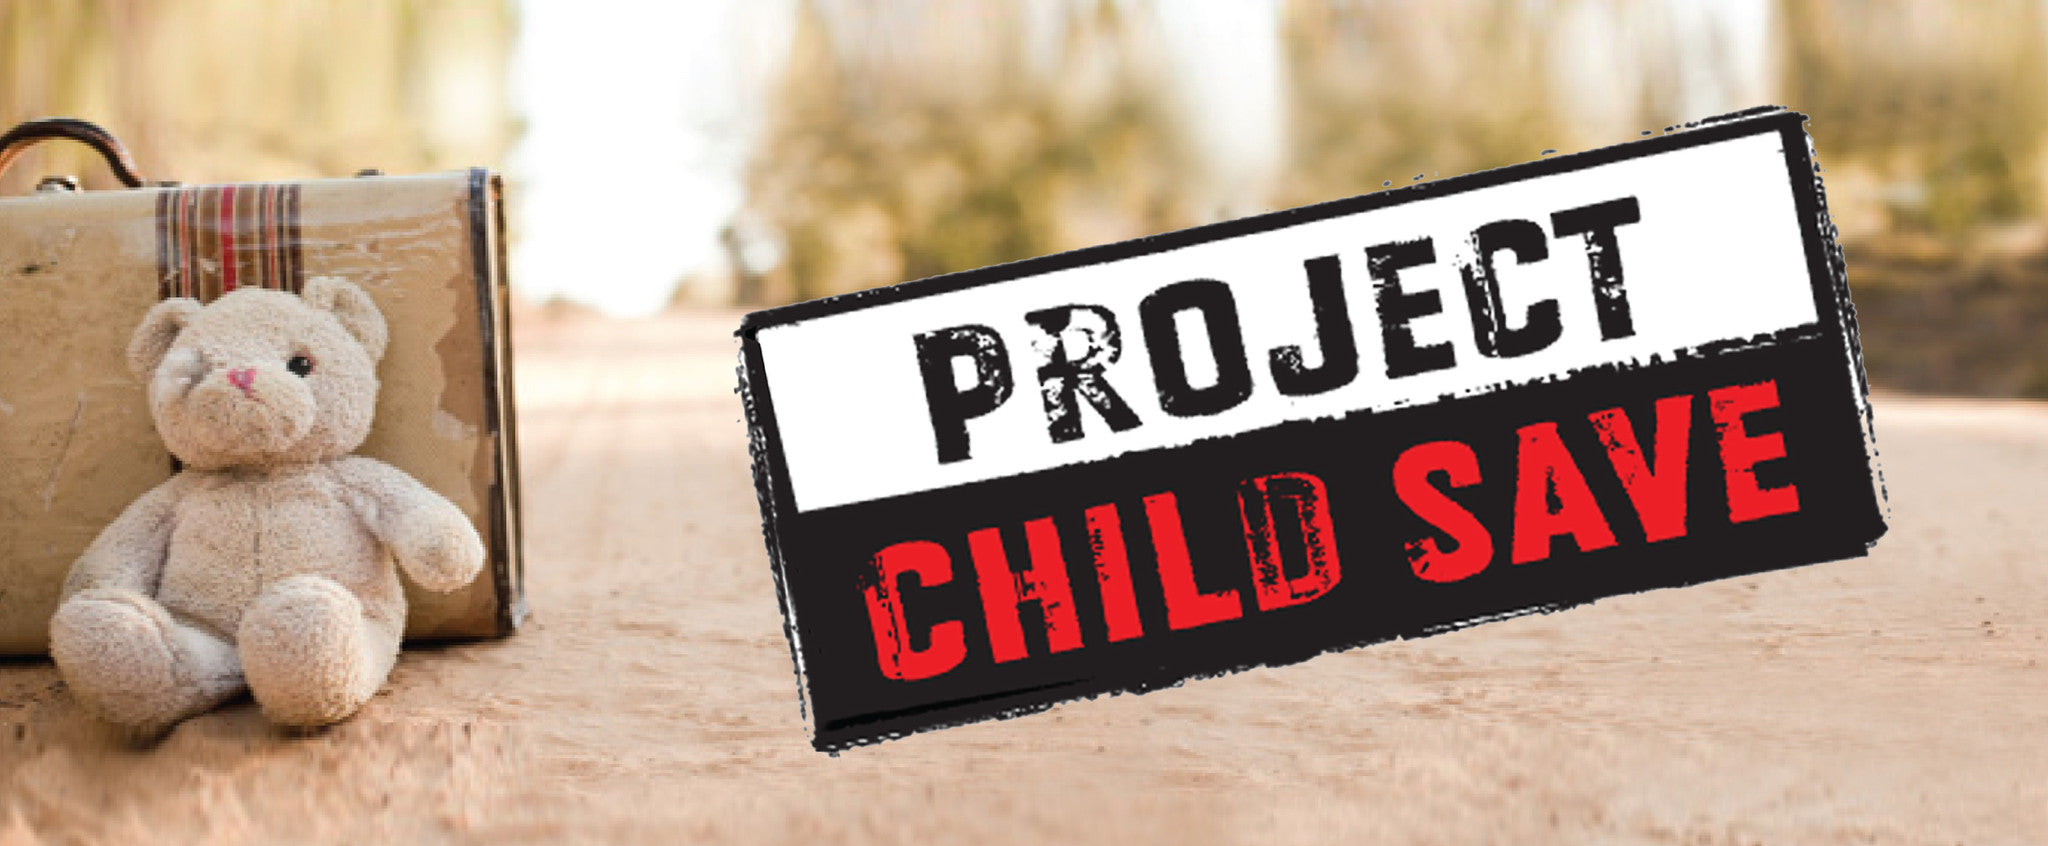 Project Child Save logo with teddy bear and suitcase